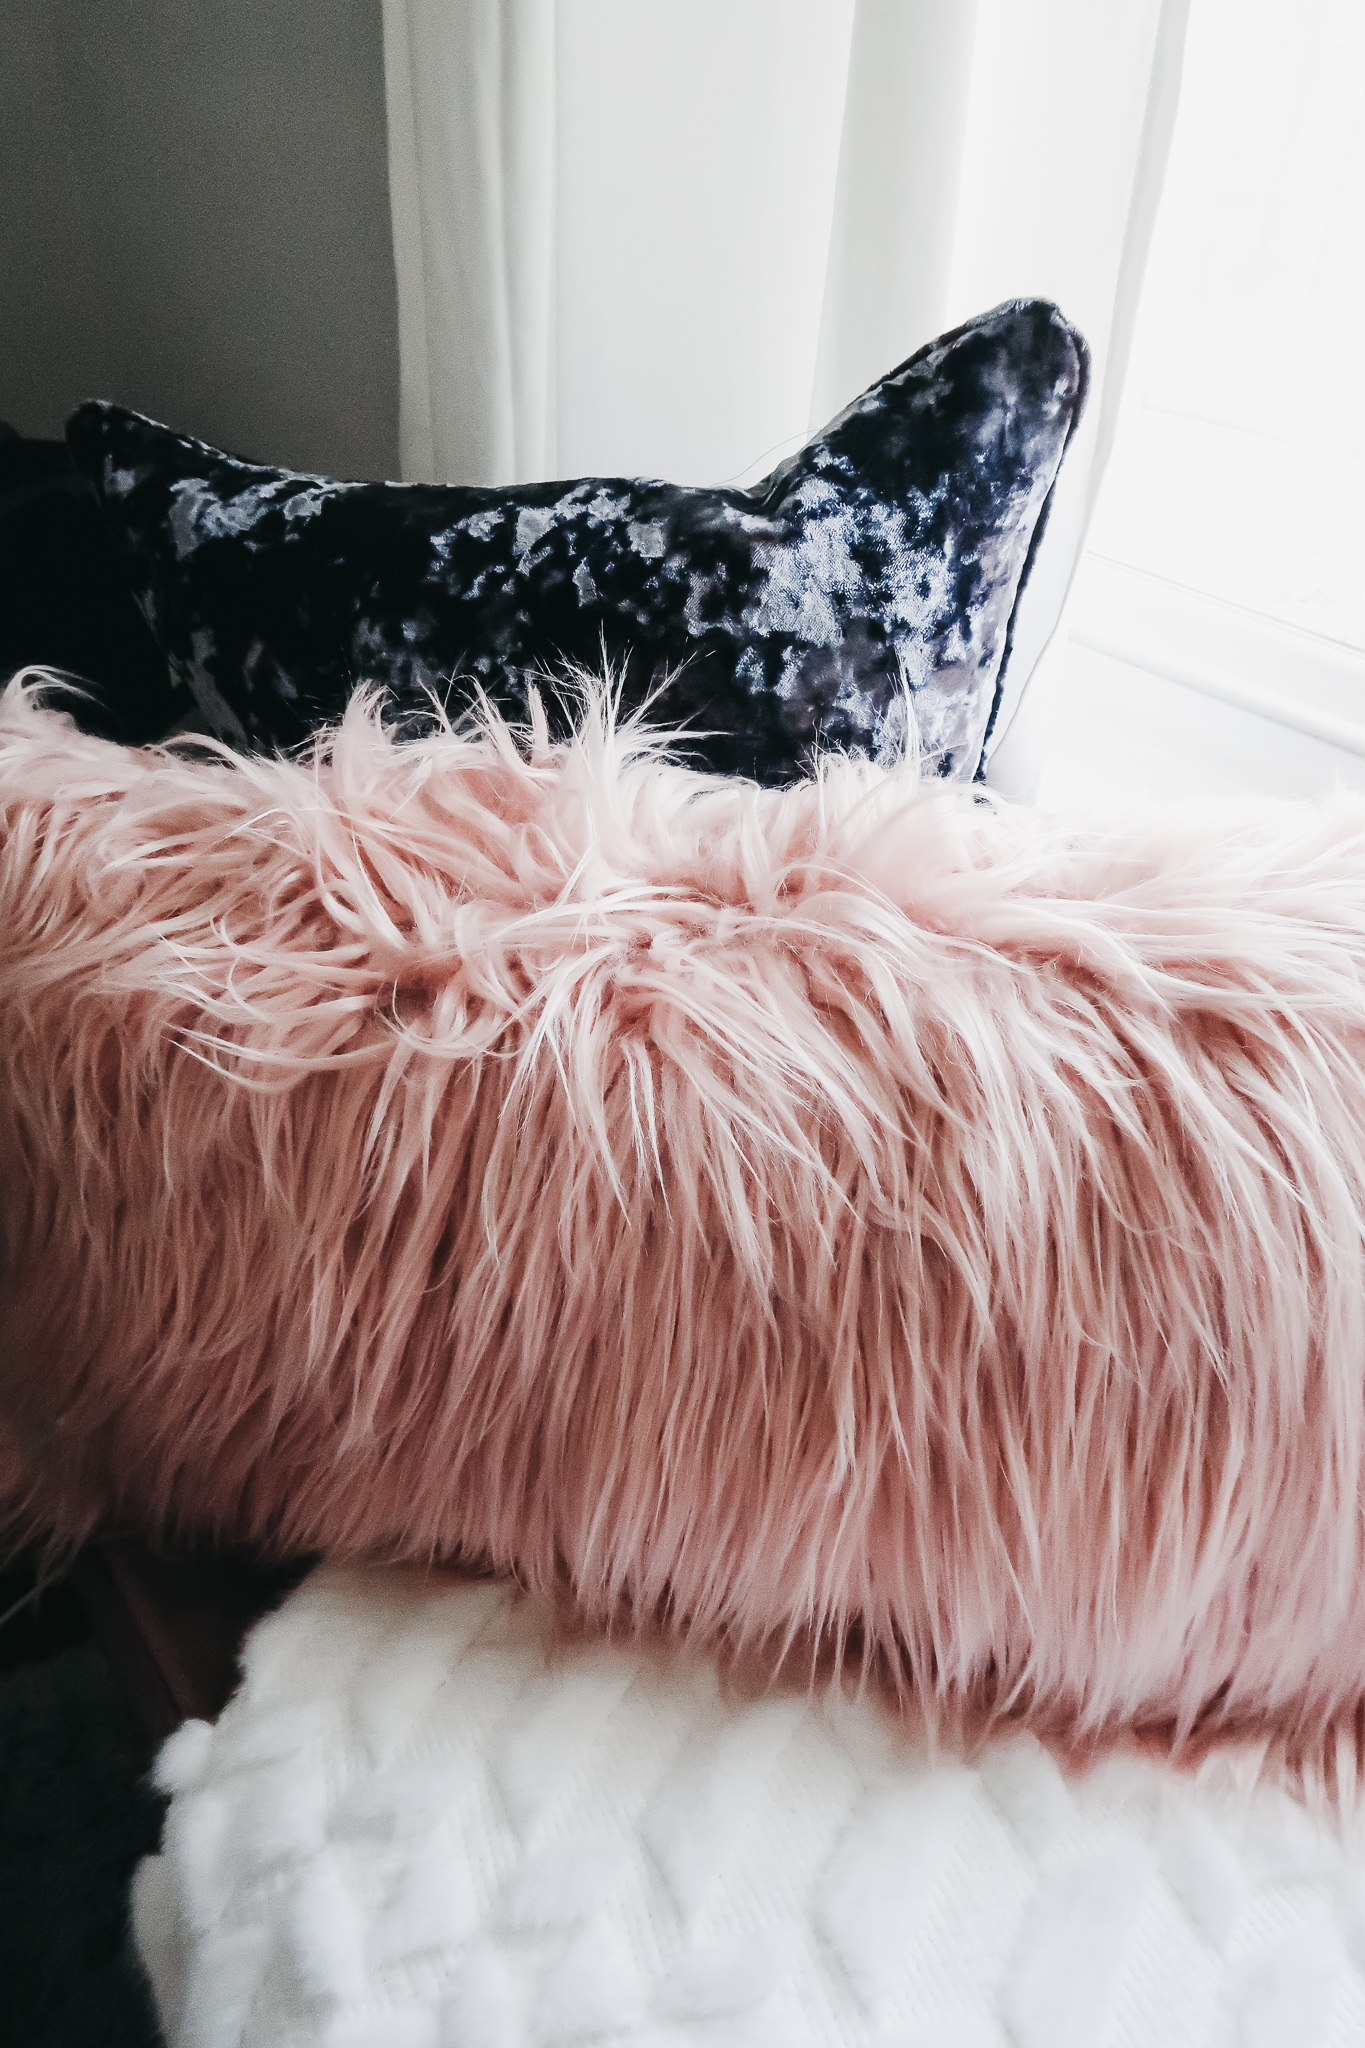 BOLD COLORS + TEXTURES 2